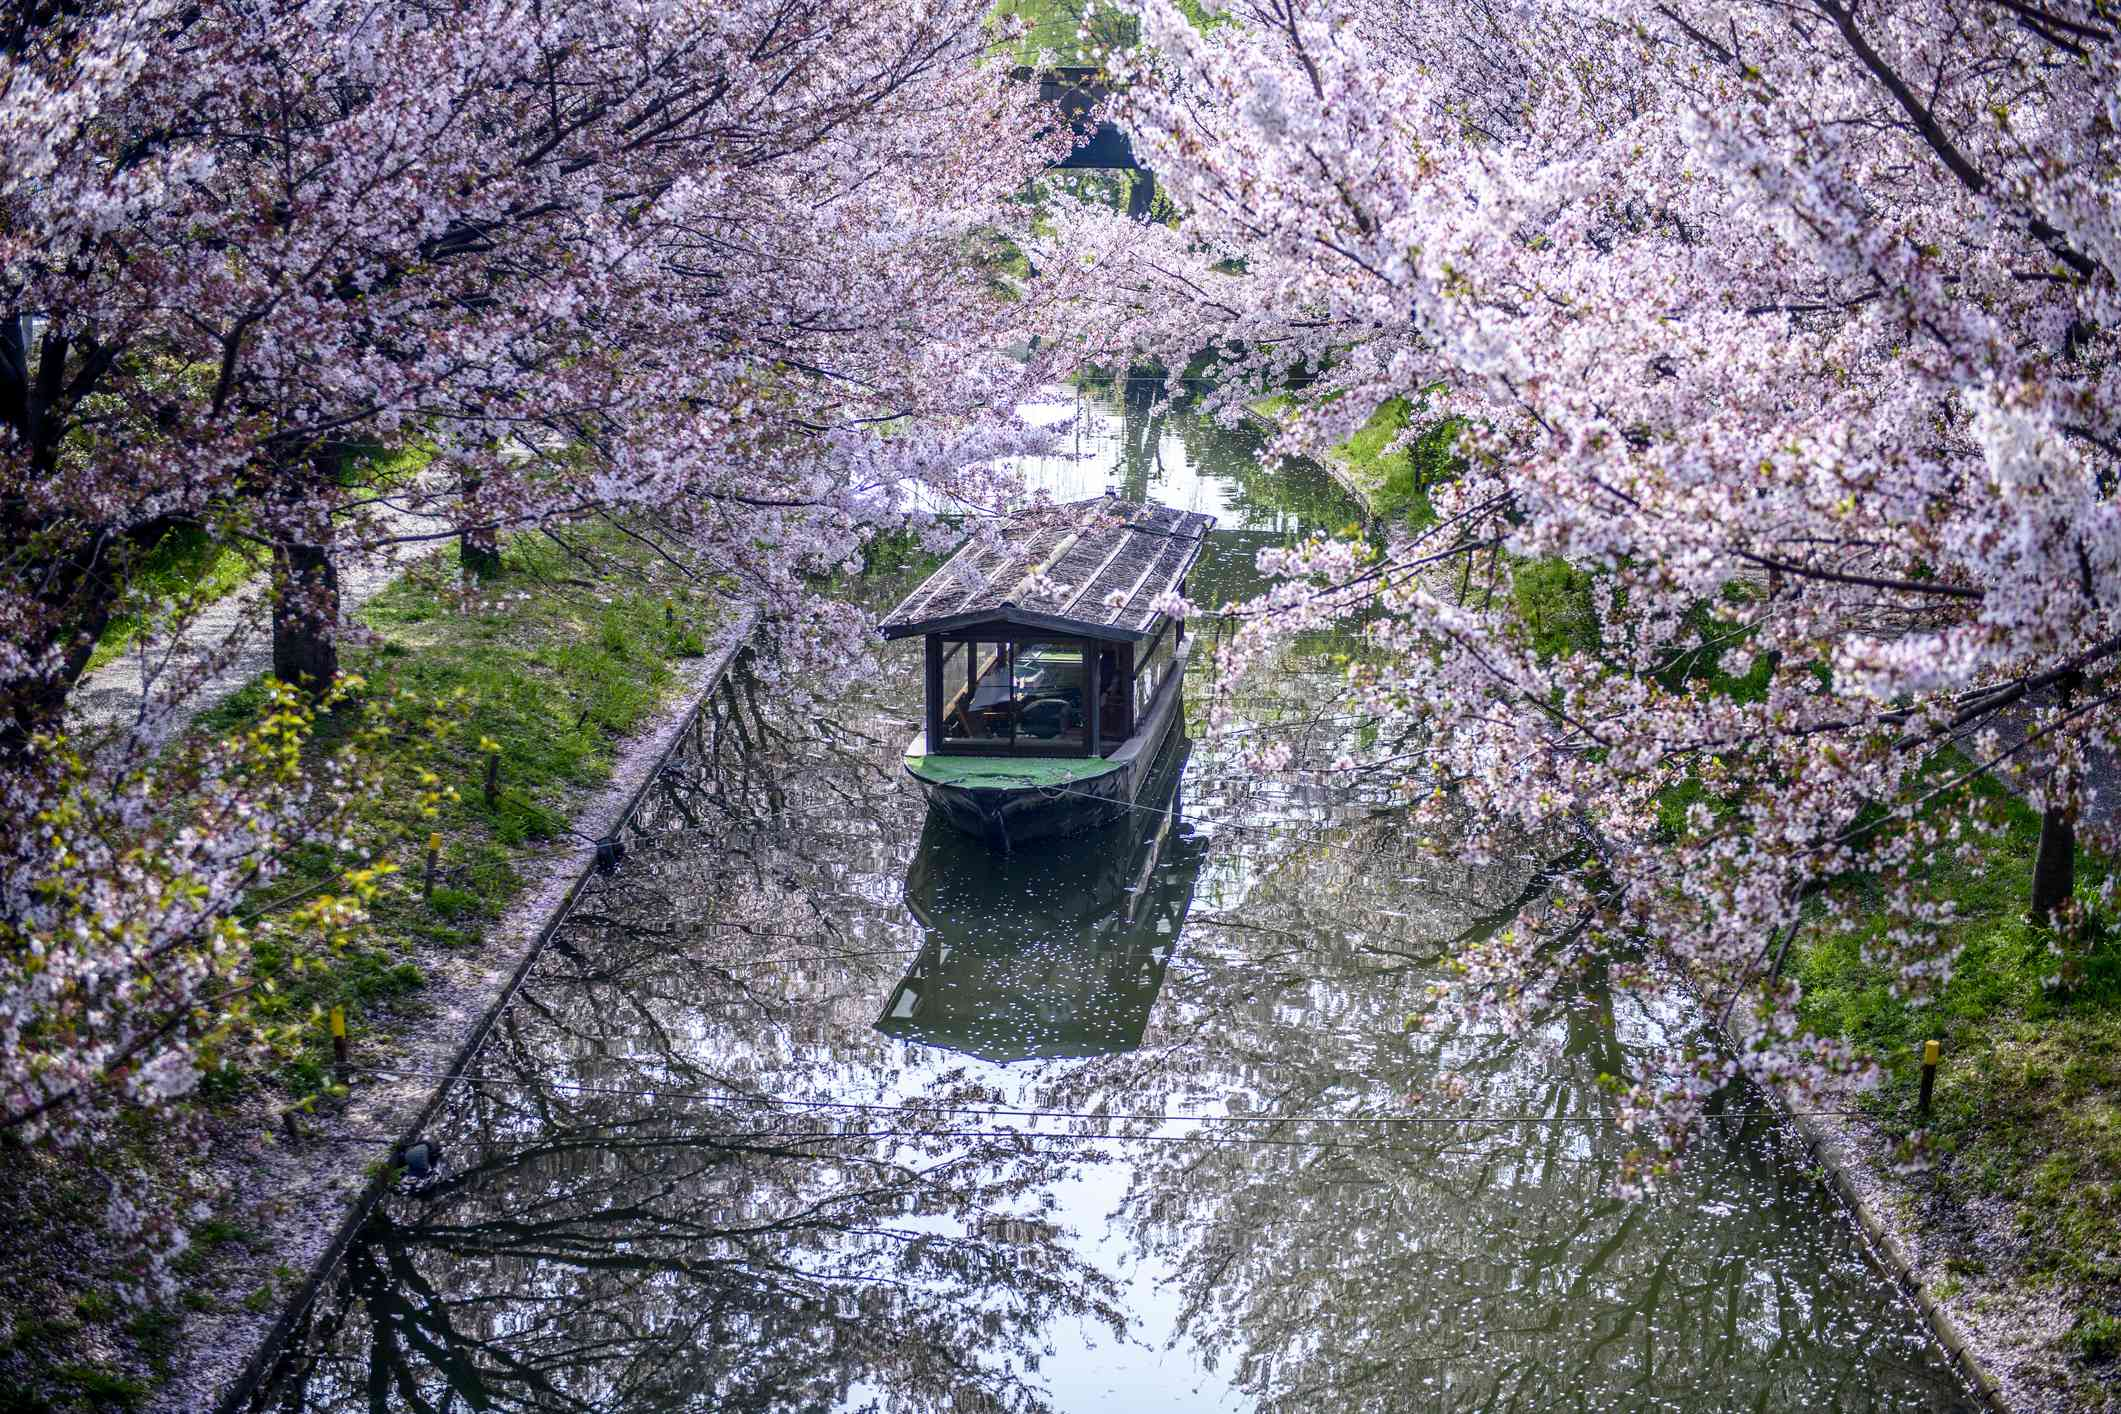 Cherry blossom trees in bloom on the banks of a small canal with a boat moving through the water